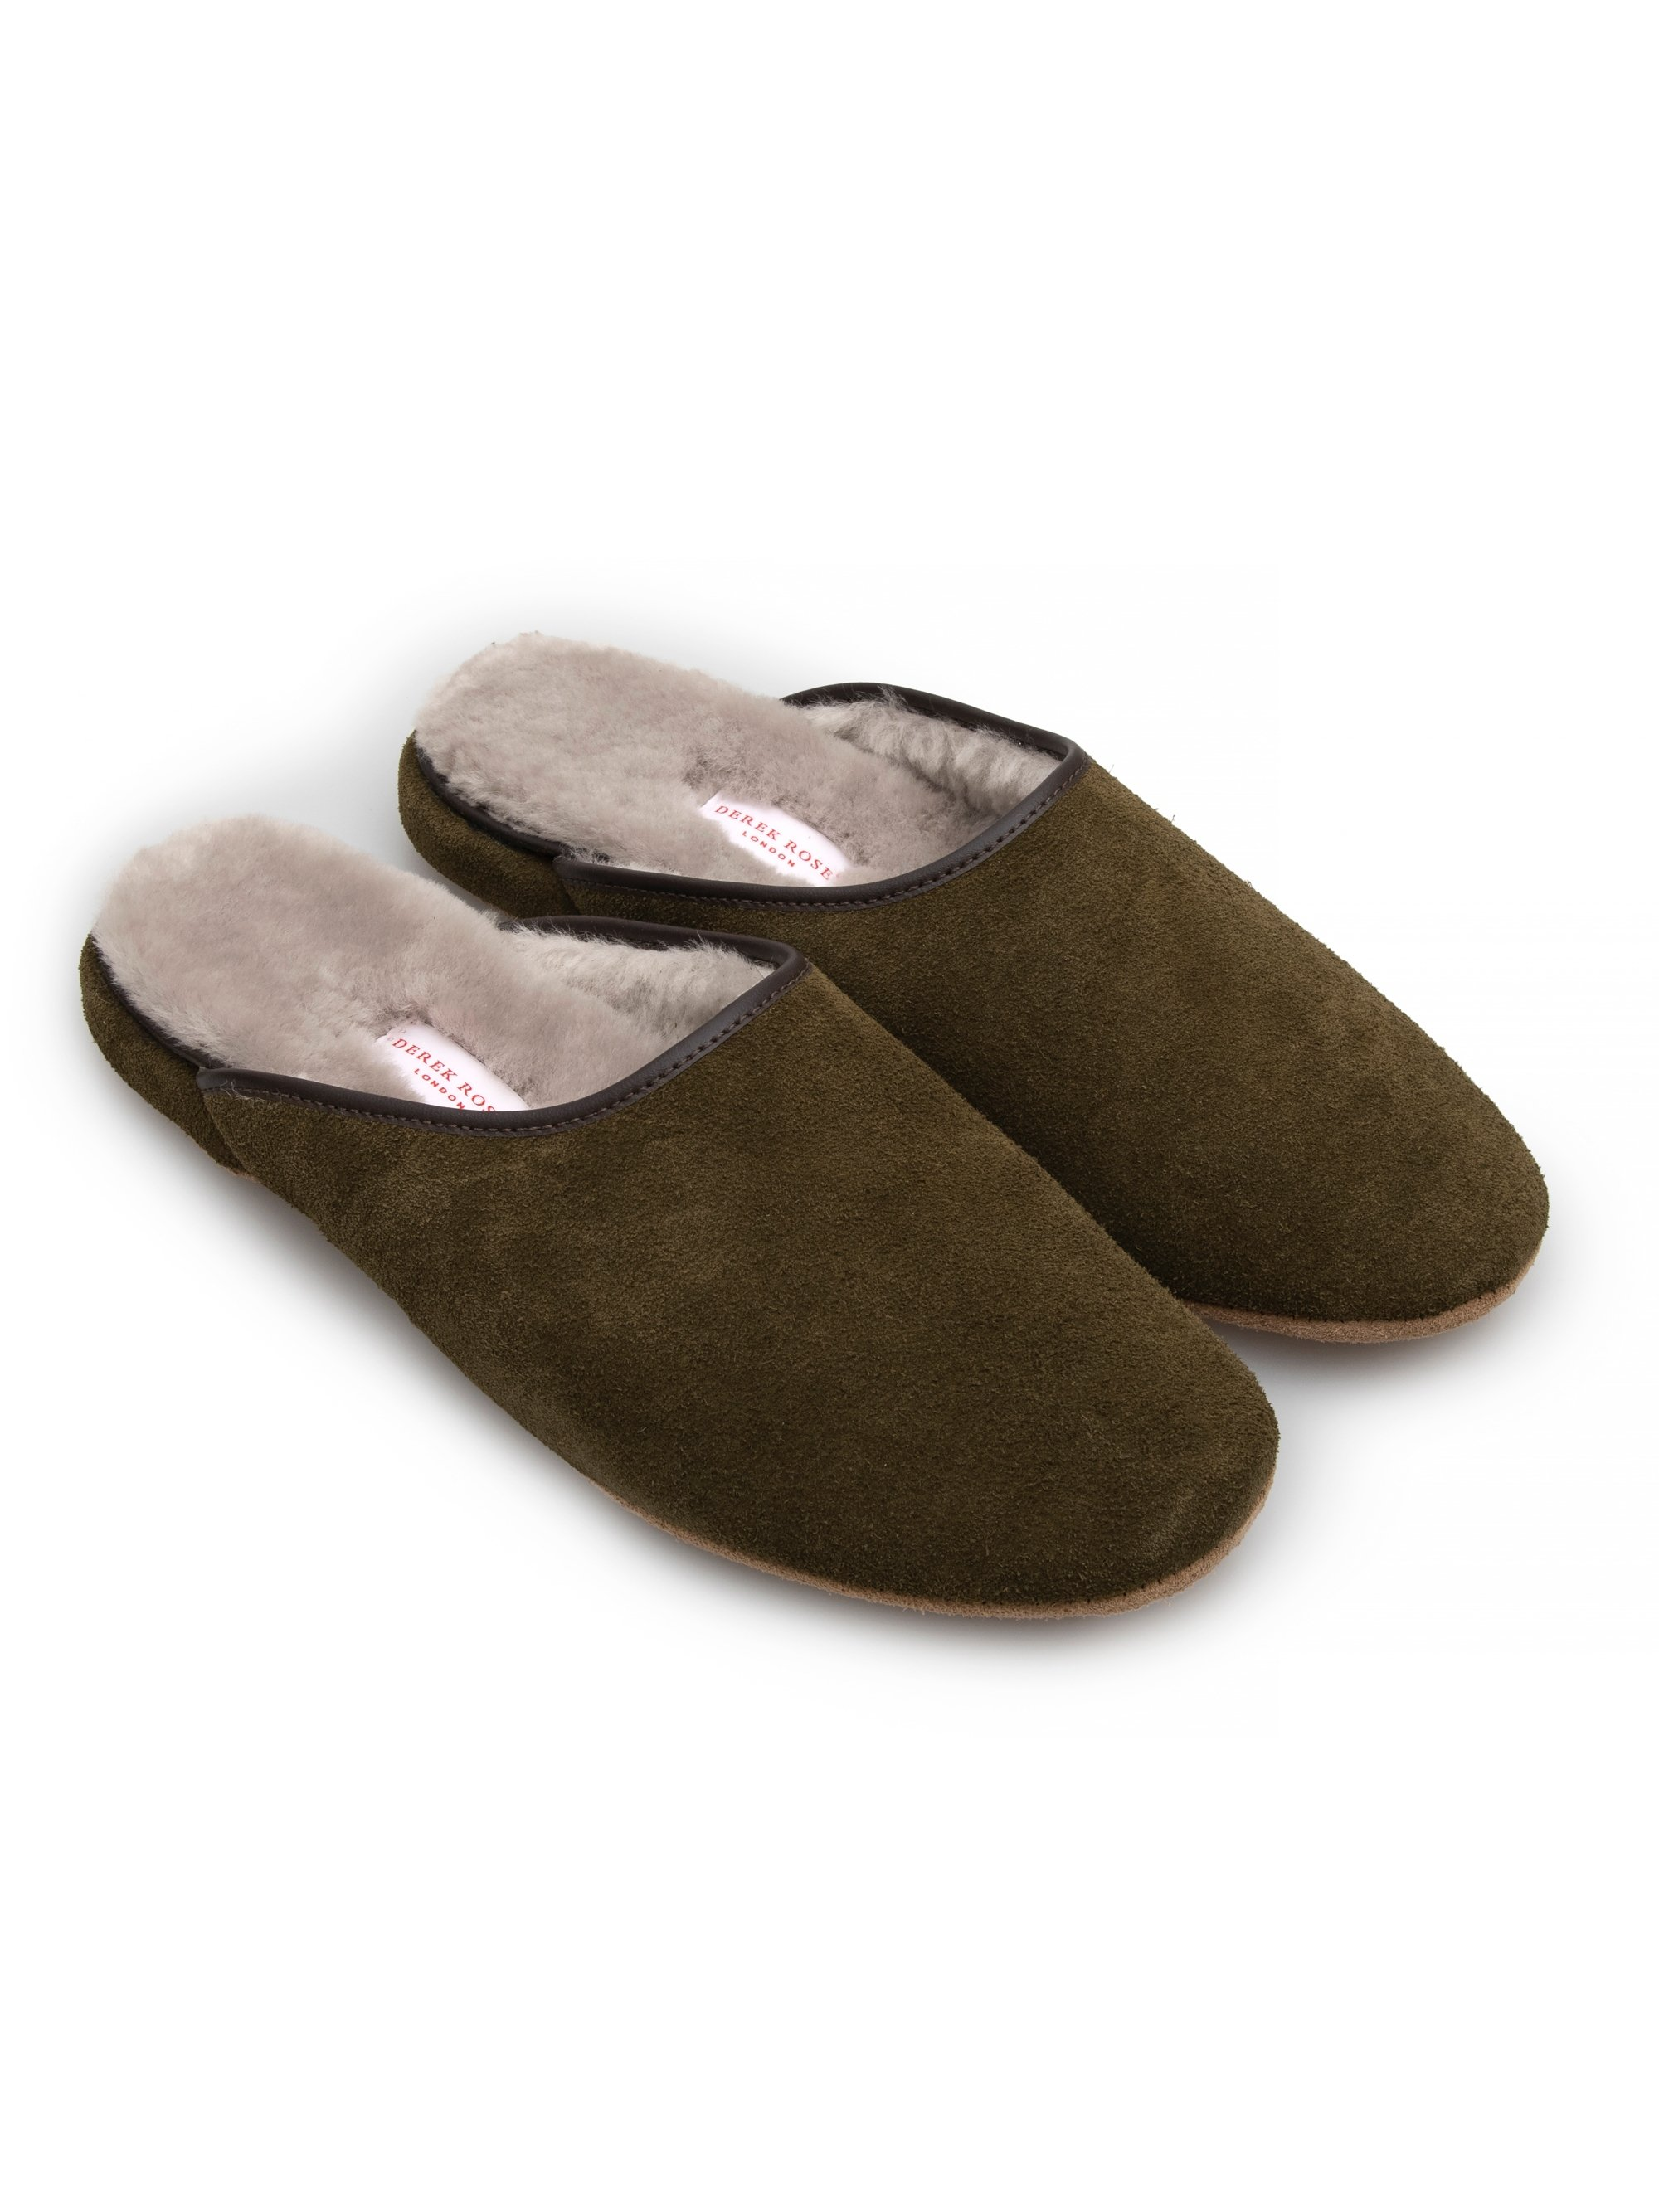 Men's Open-Back Slipper Douglas Suede Sheepskin Khaki